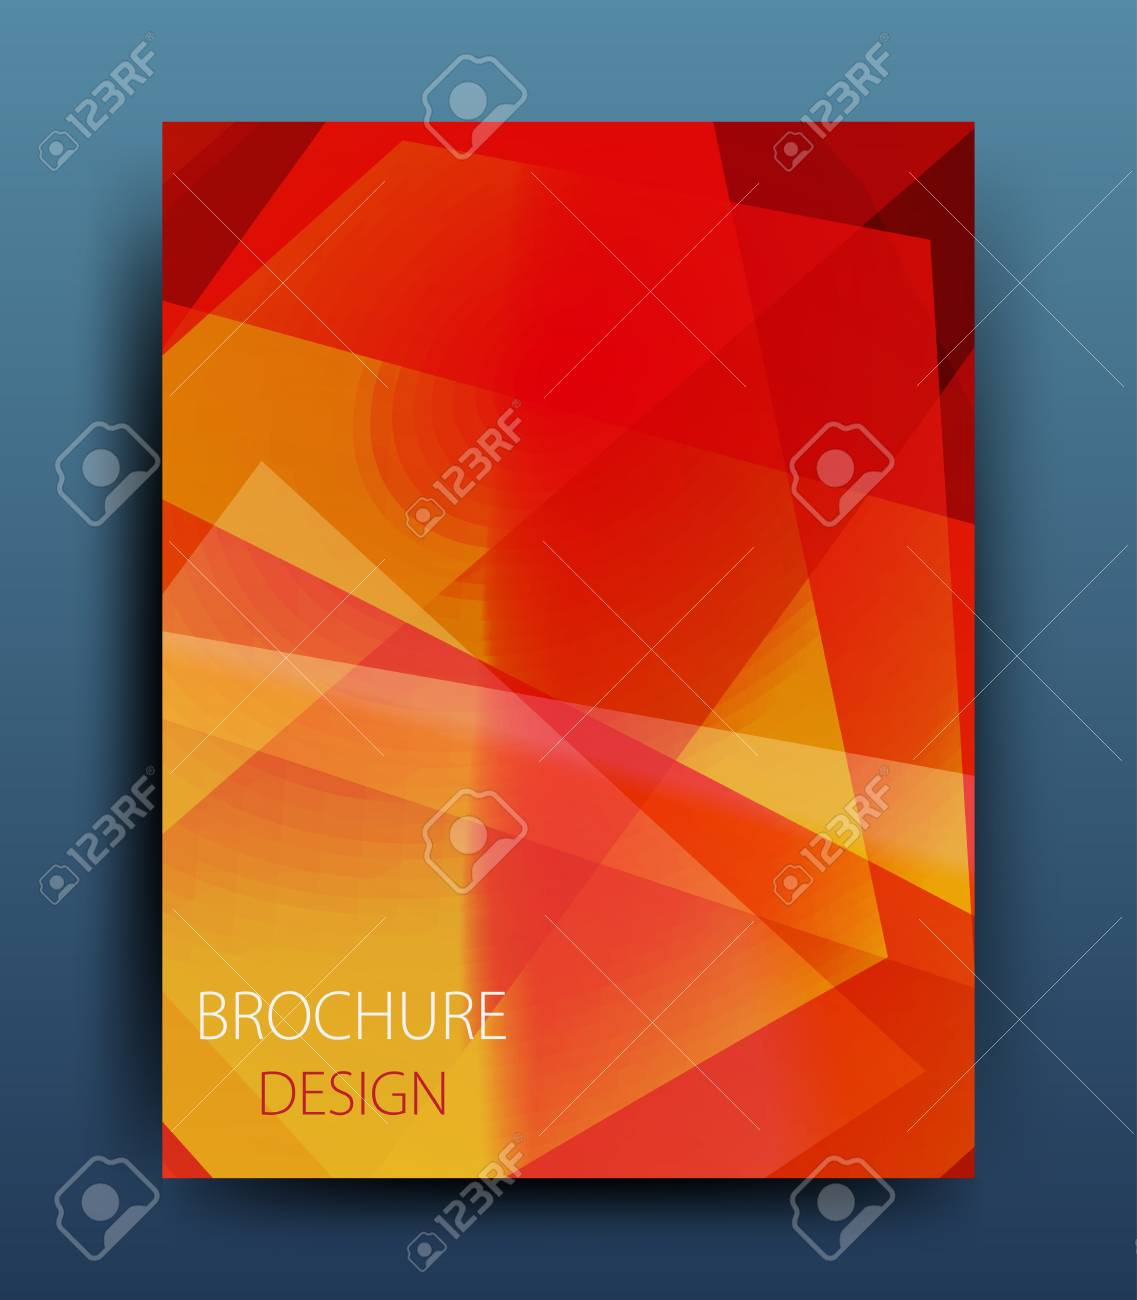 vector vector business brochure flyer template or corporate banner design